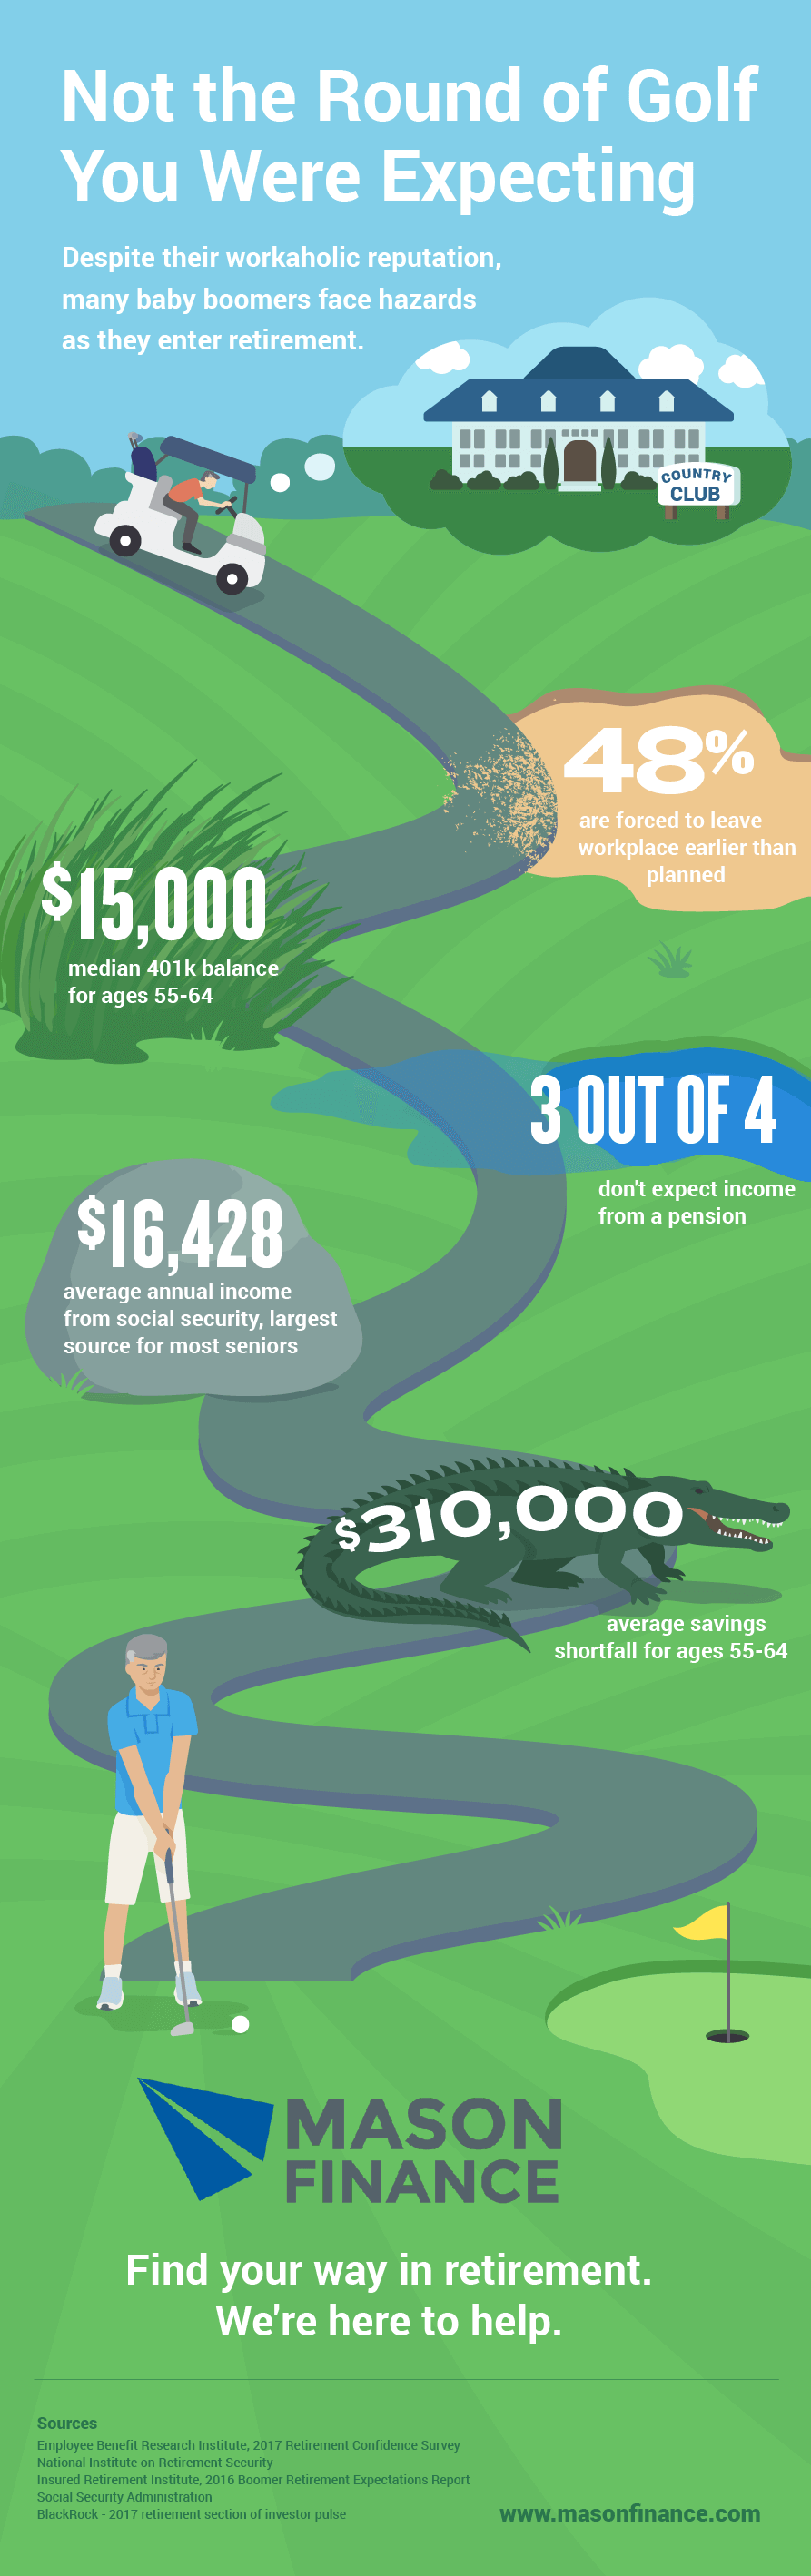 Not the Round of Golf You Were Expecting Infographic